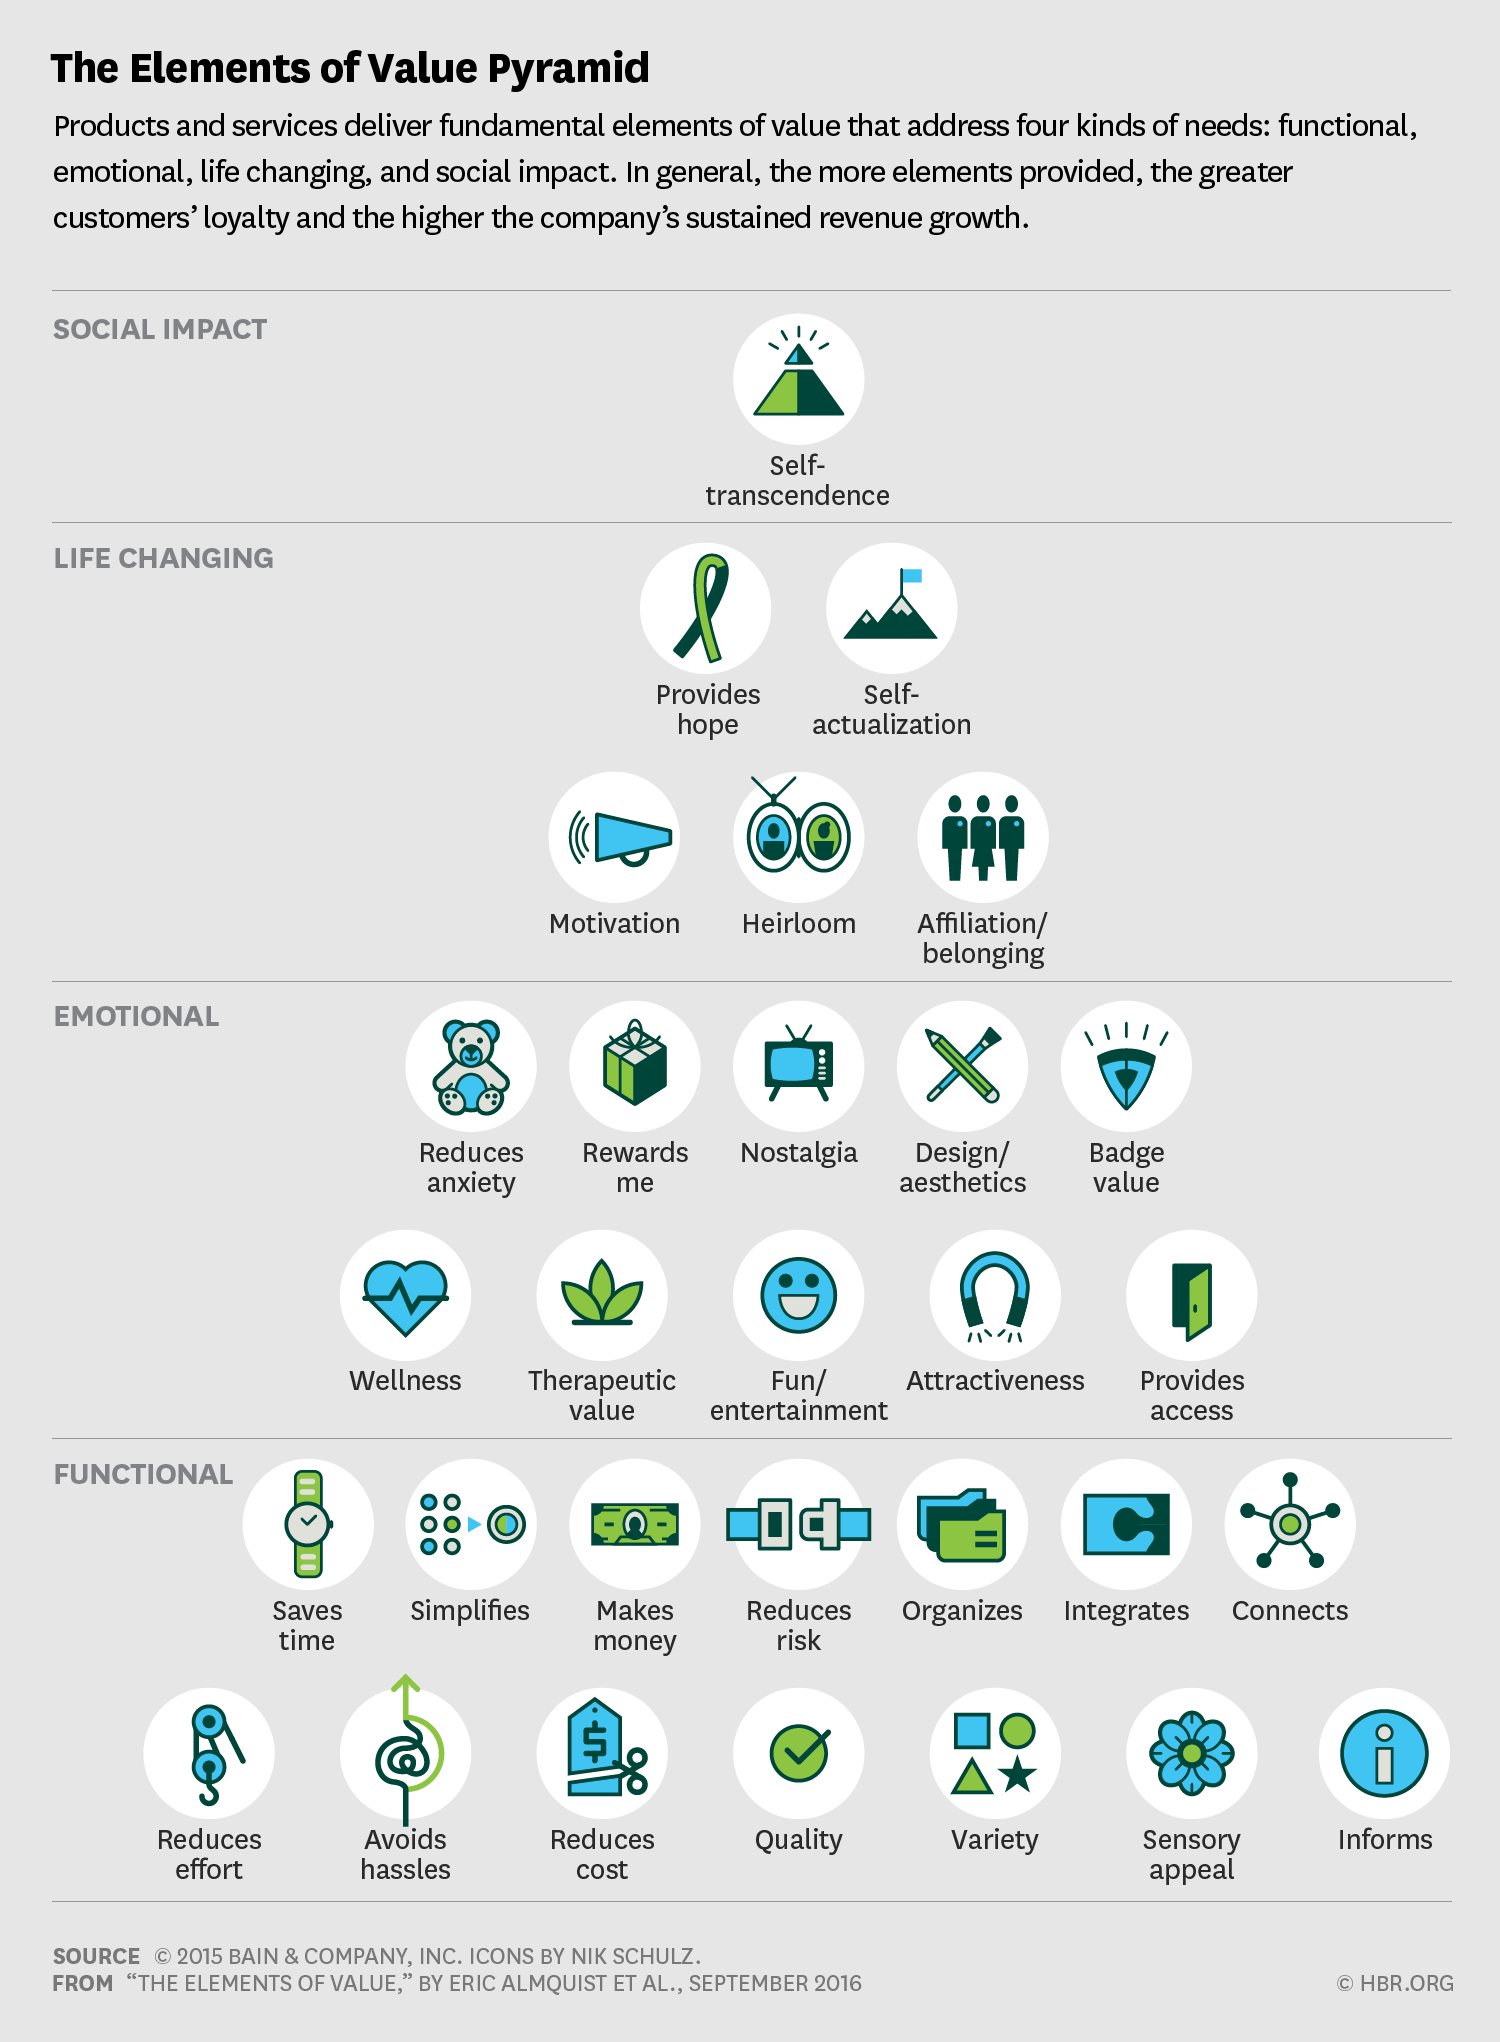 The elements of value pyramid for customer loyalty and brand growth